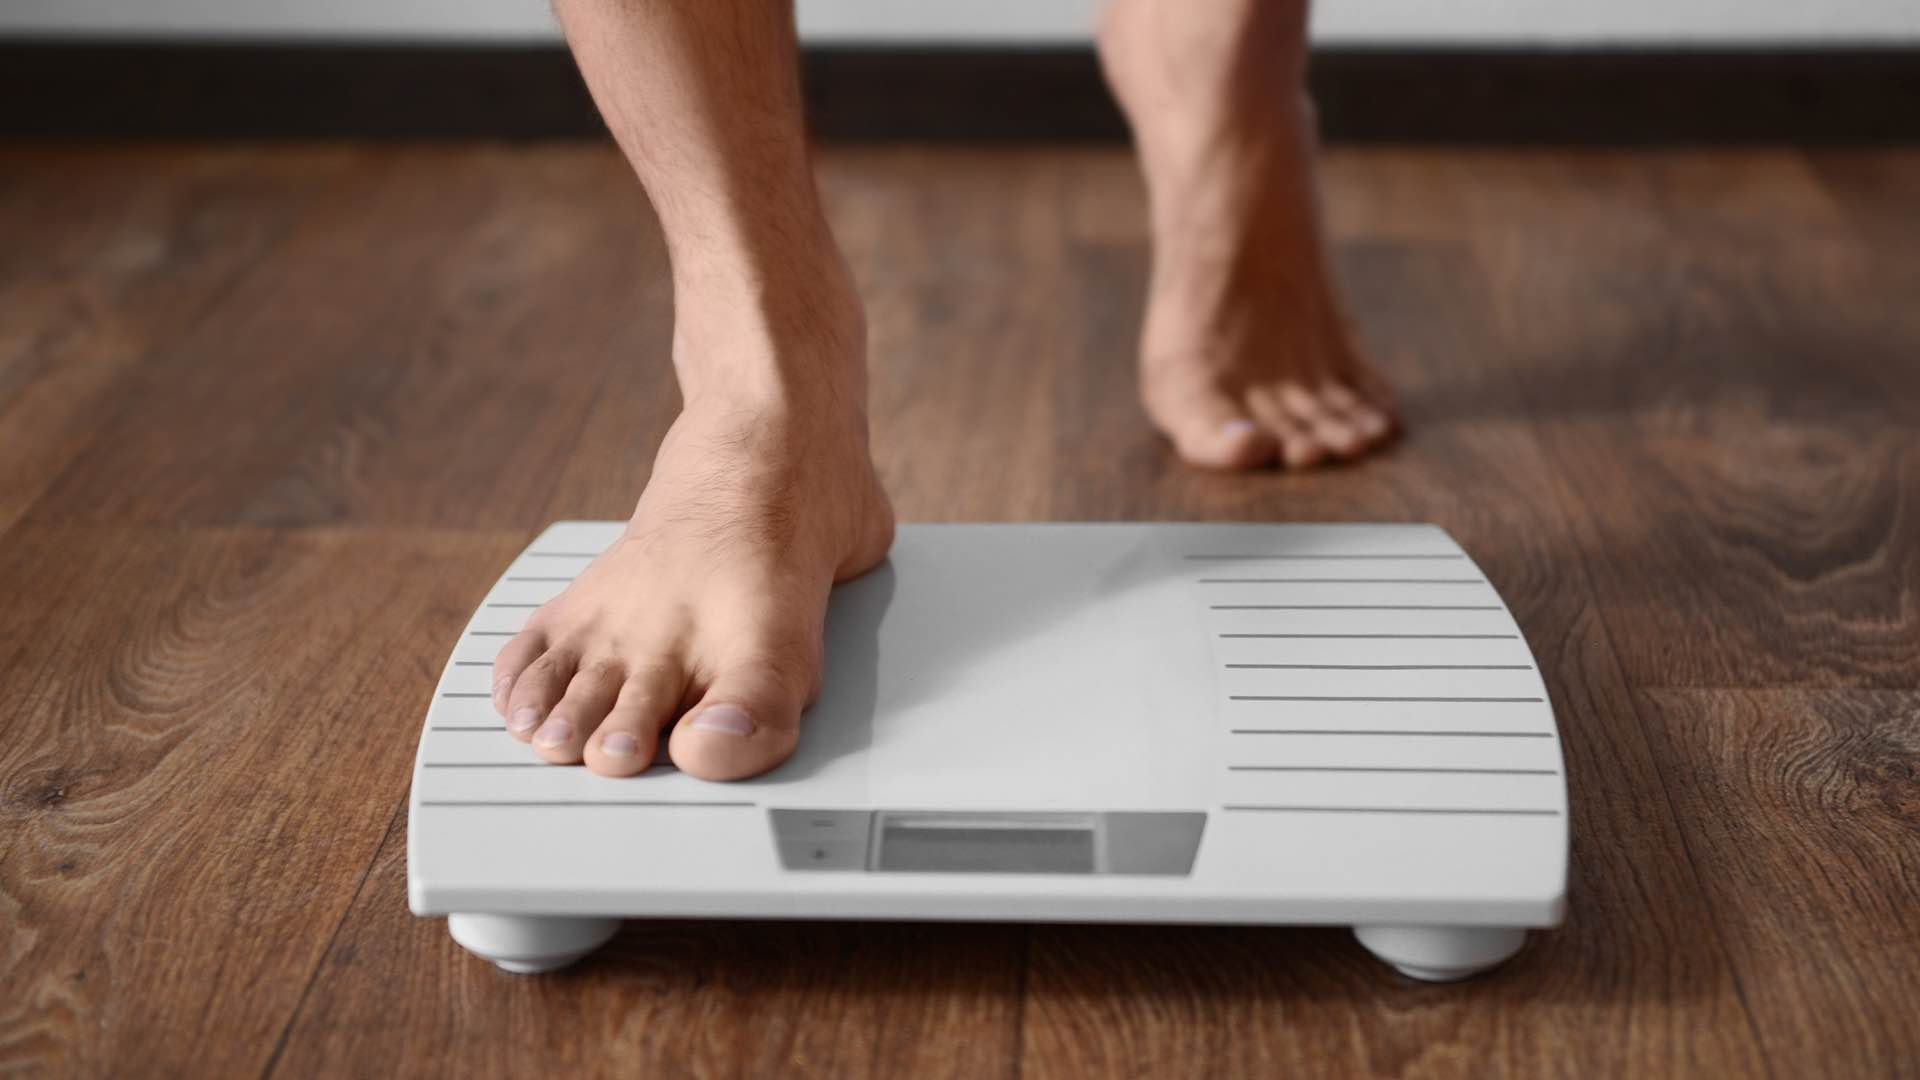 exercise and weight loss are correlated